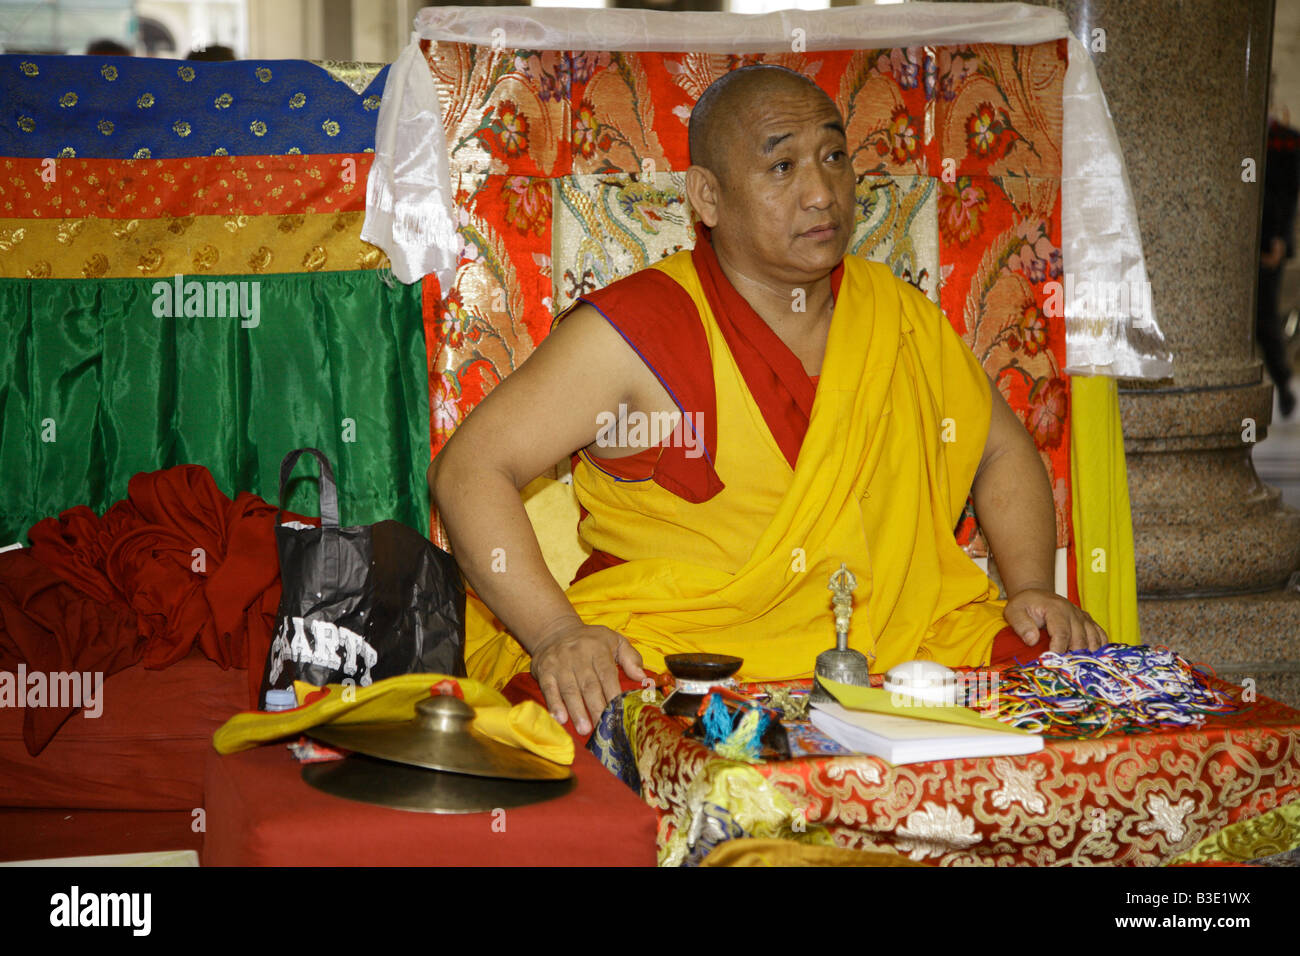 Tibetan Buddist monk in yellow and red robes - Stock Image